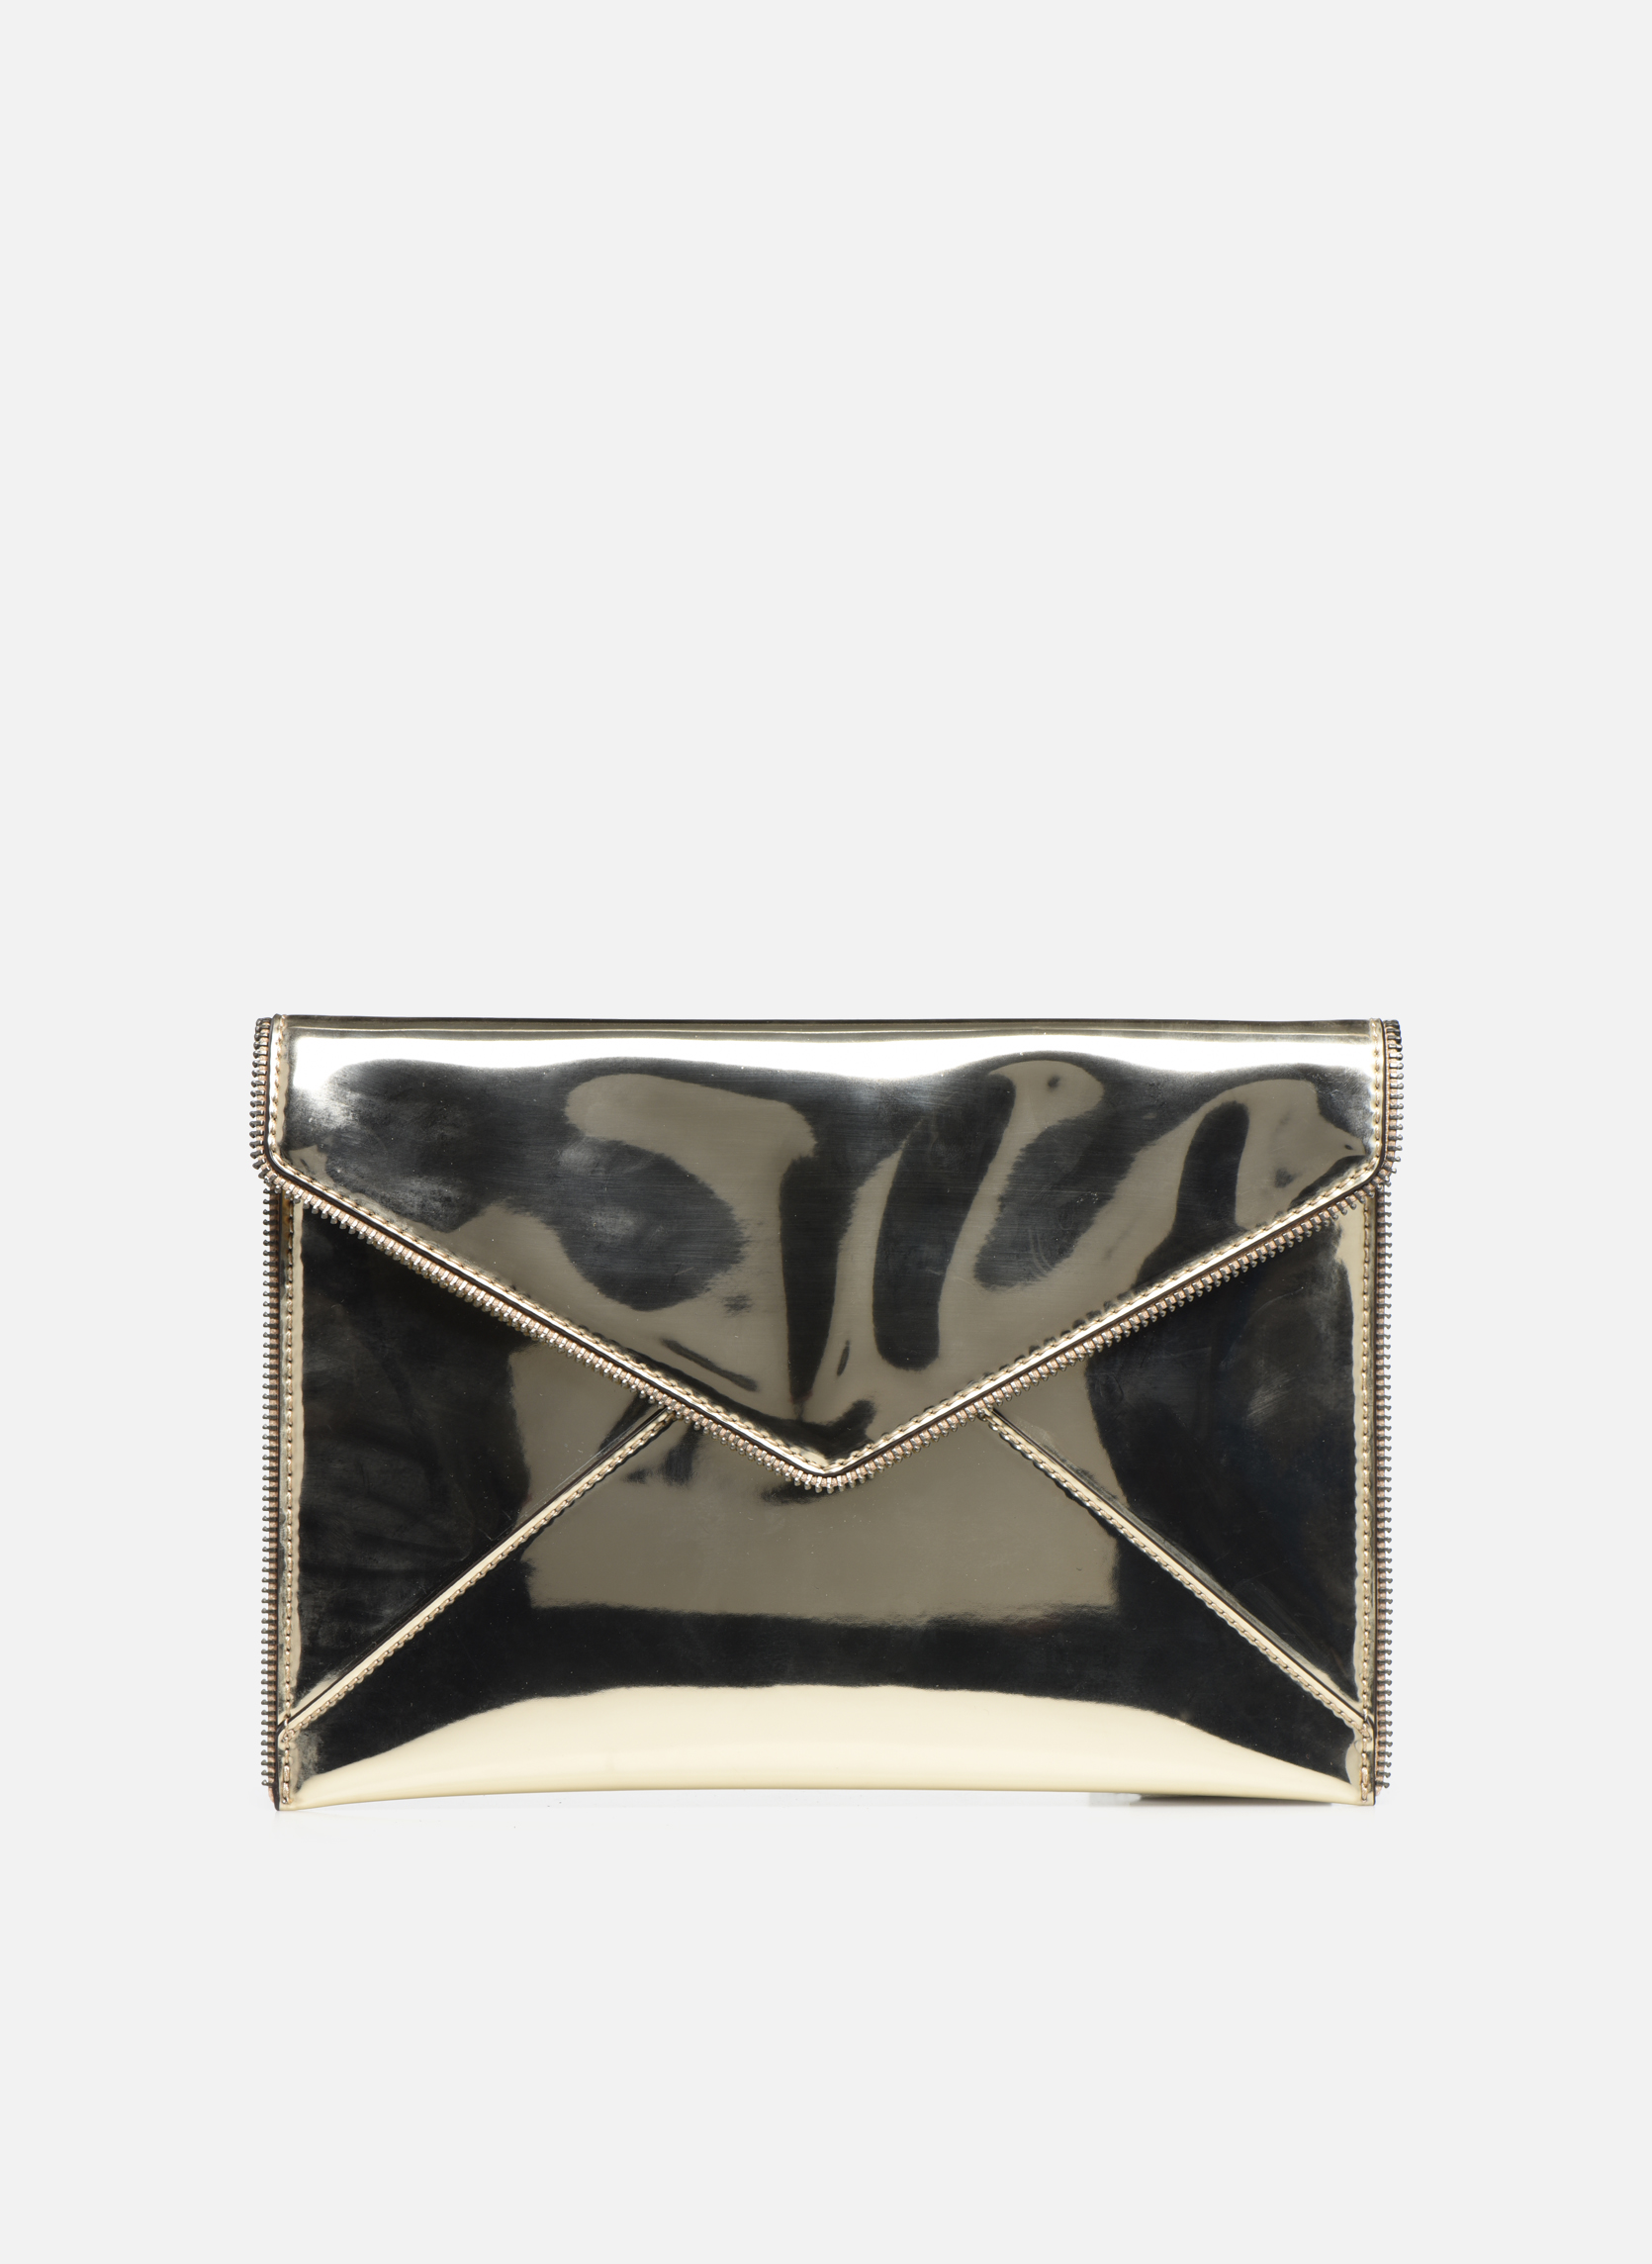 MIRRORED METALLIC LEO CLUTCH